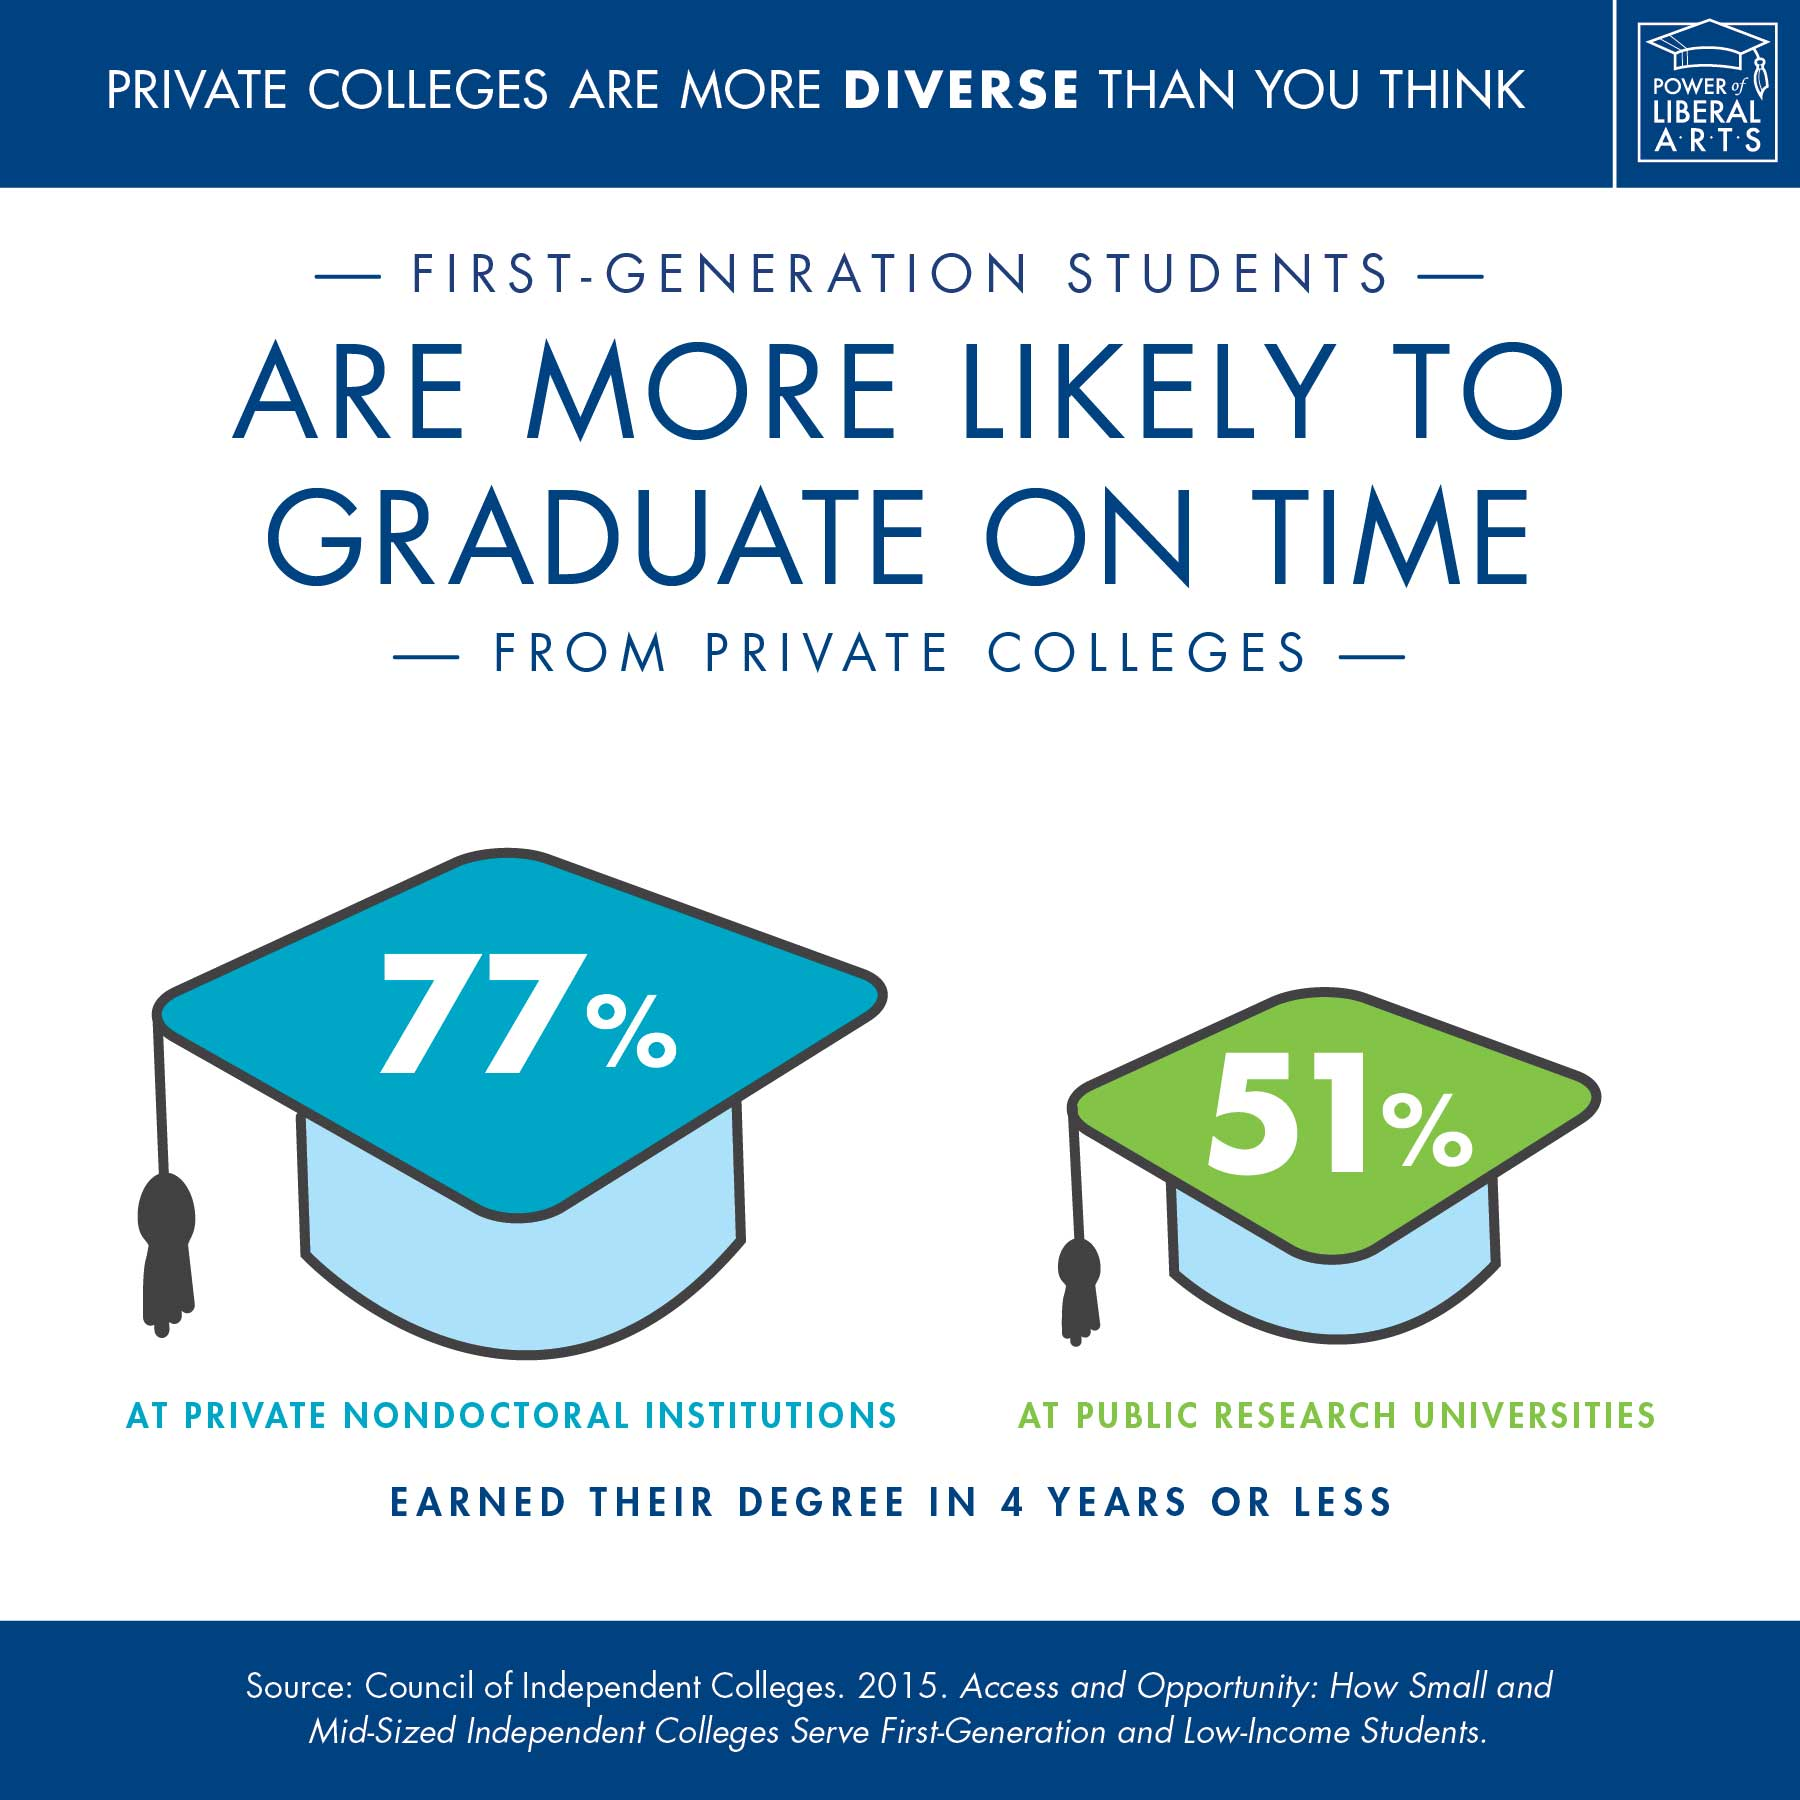 Infographic: First-generation students are more likely to graduate on time from private colleges